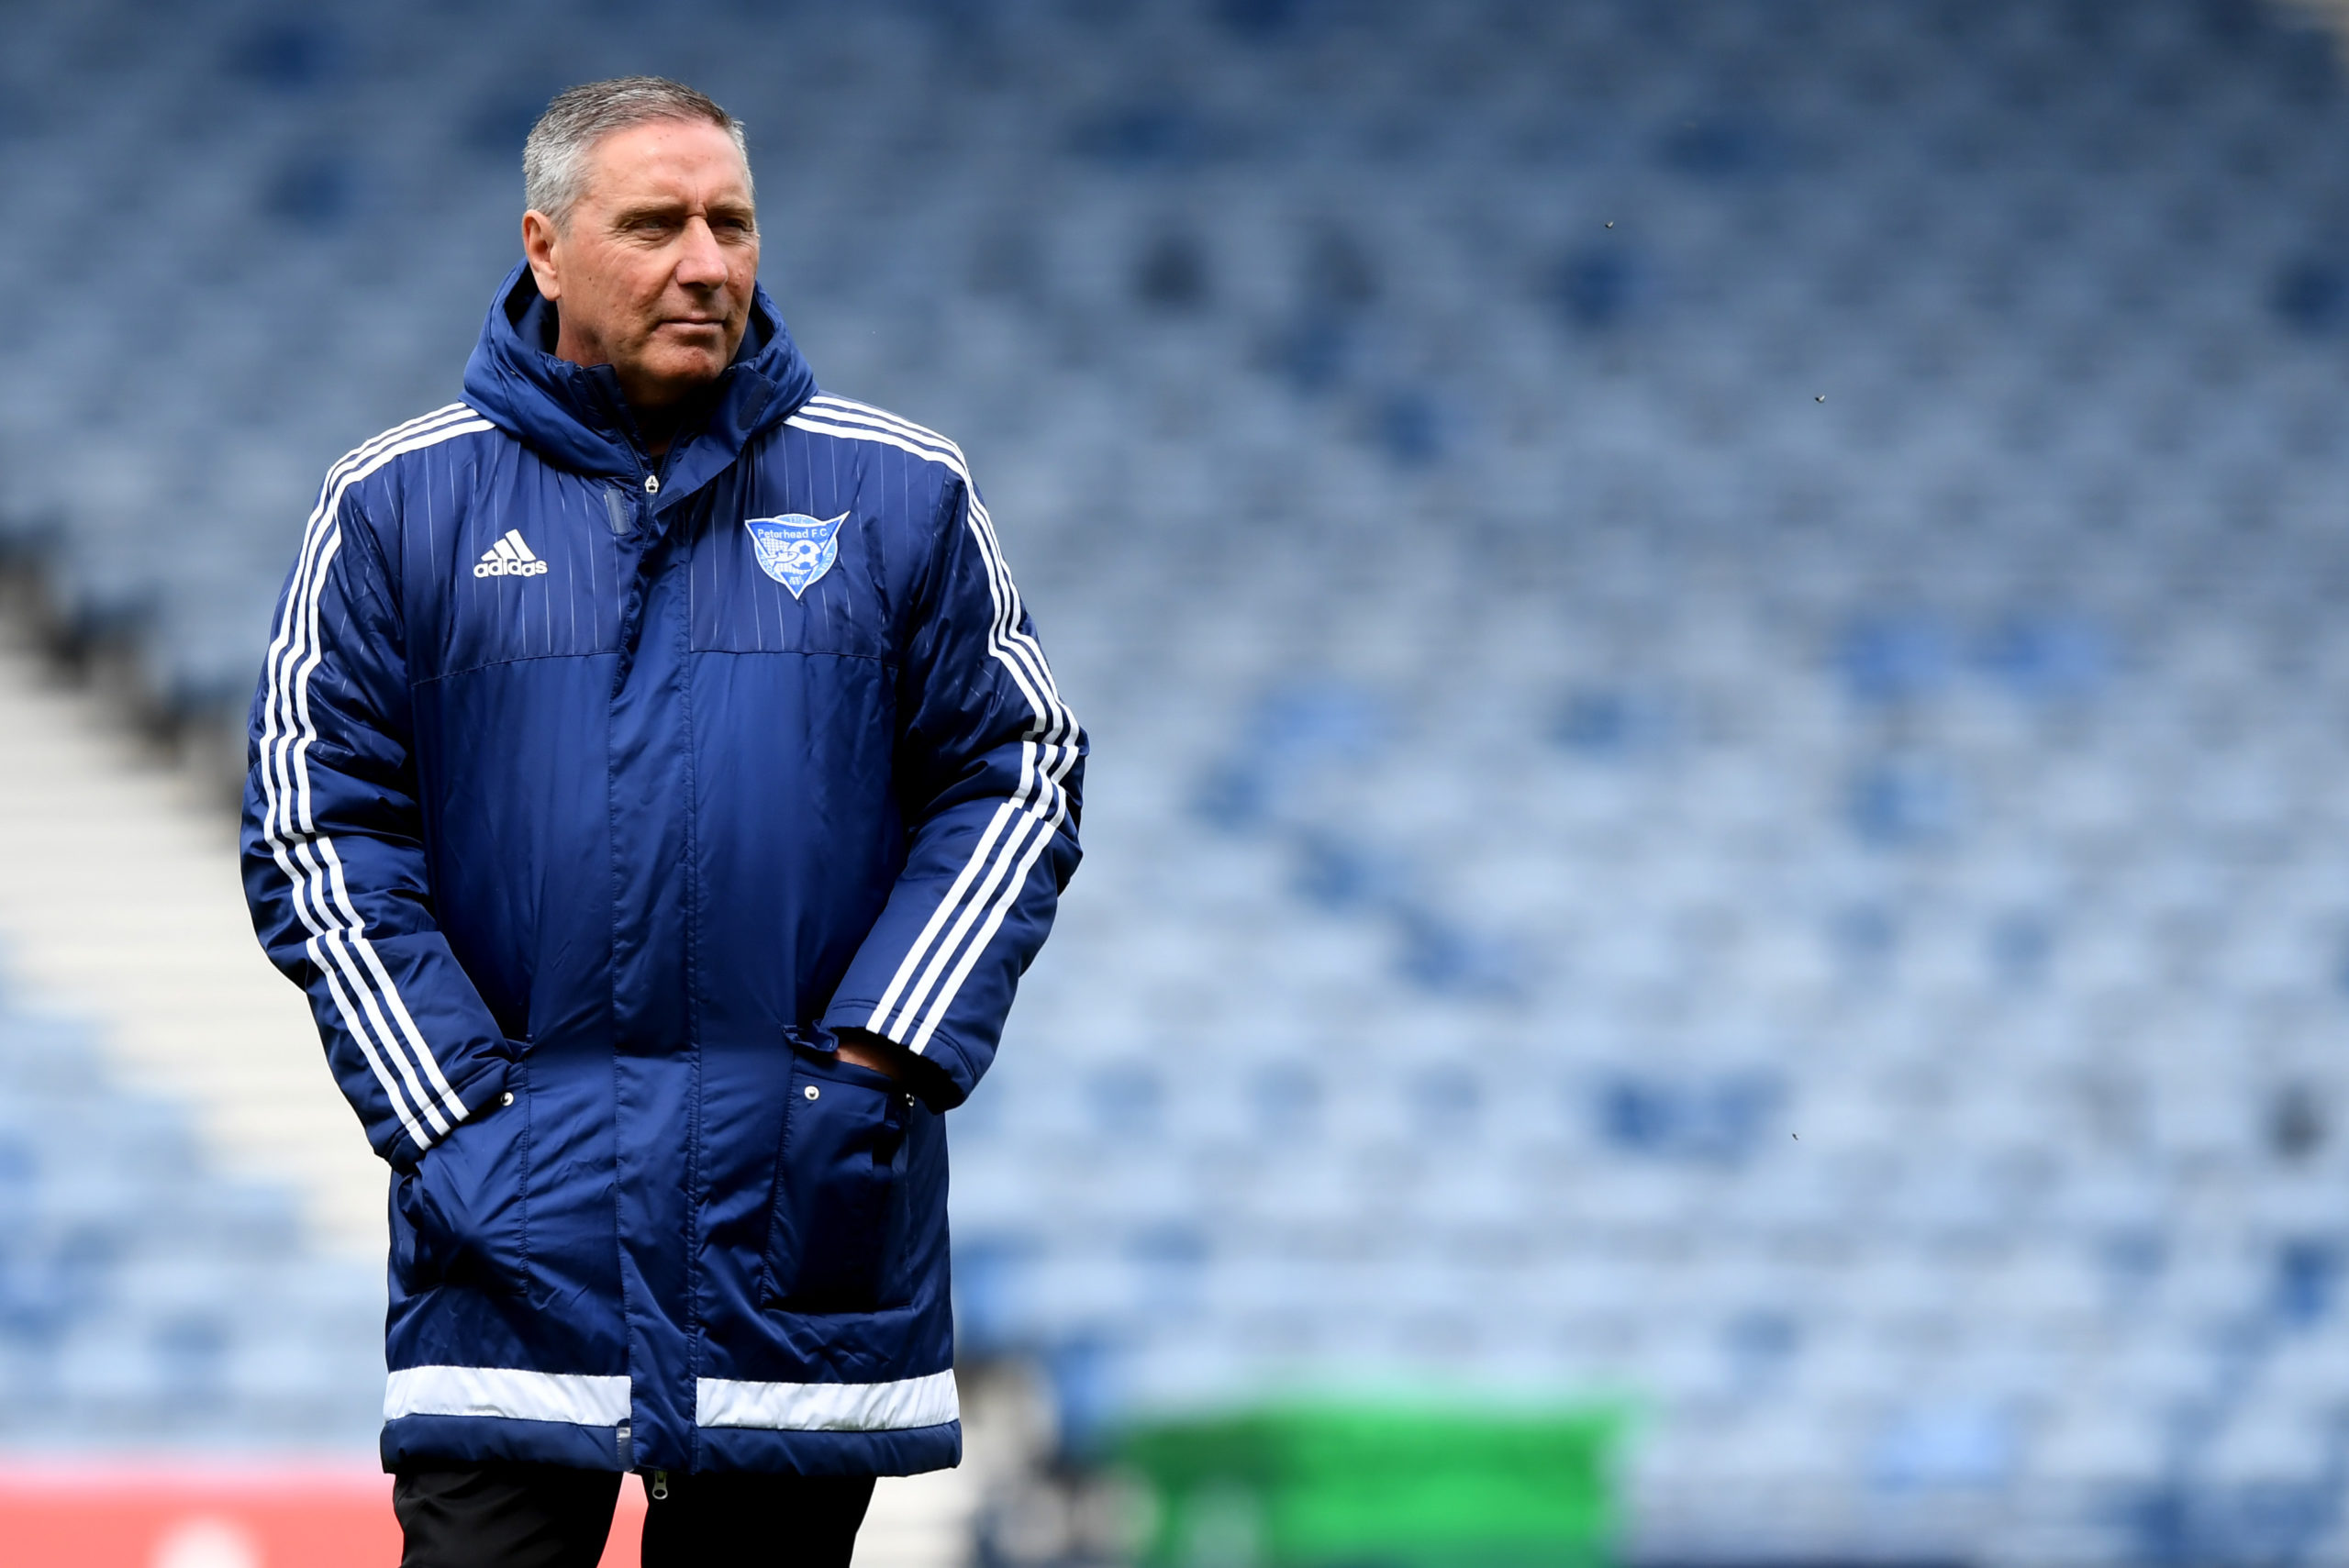 Jim McInally has been in charge of Peterhead for almost nine years